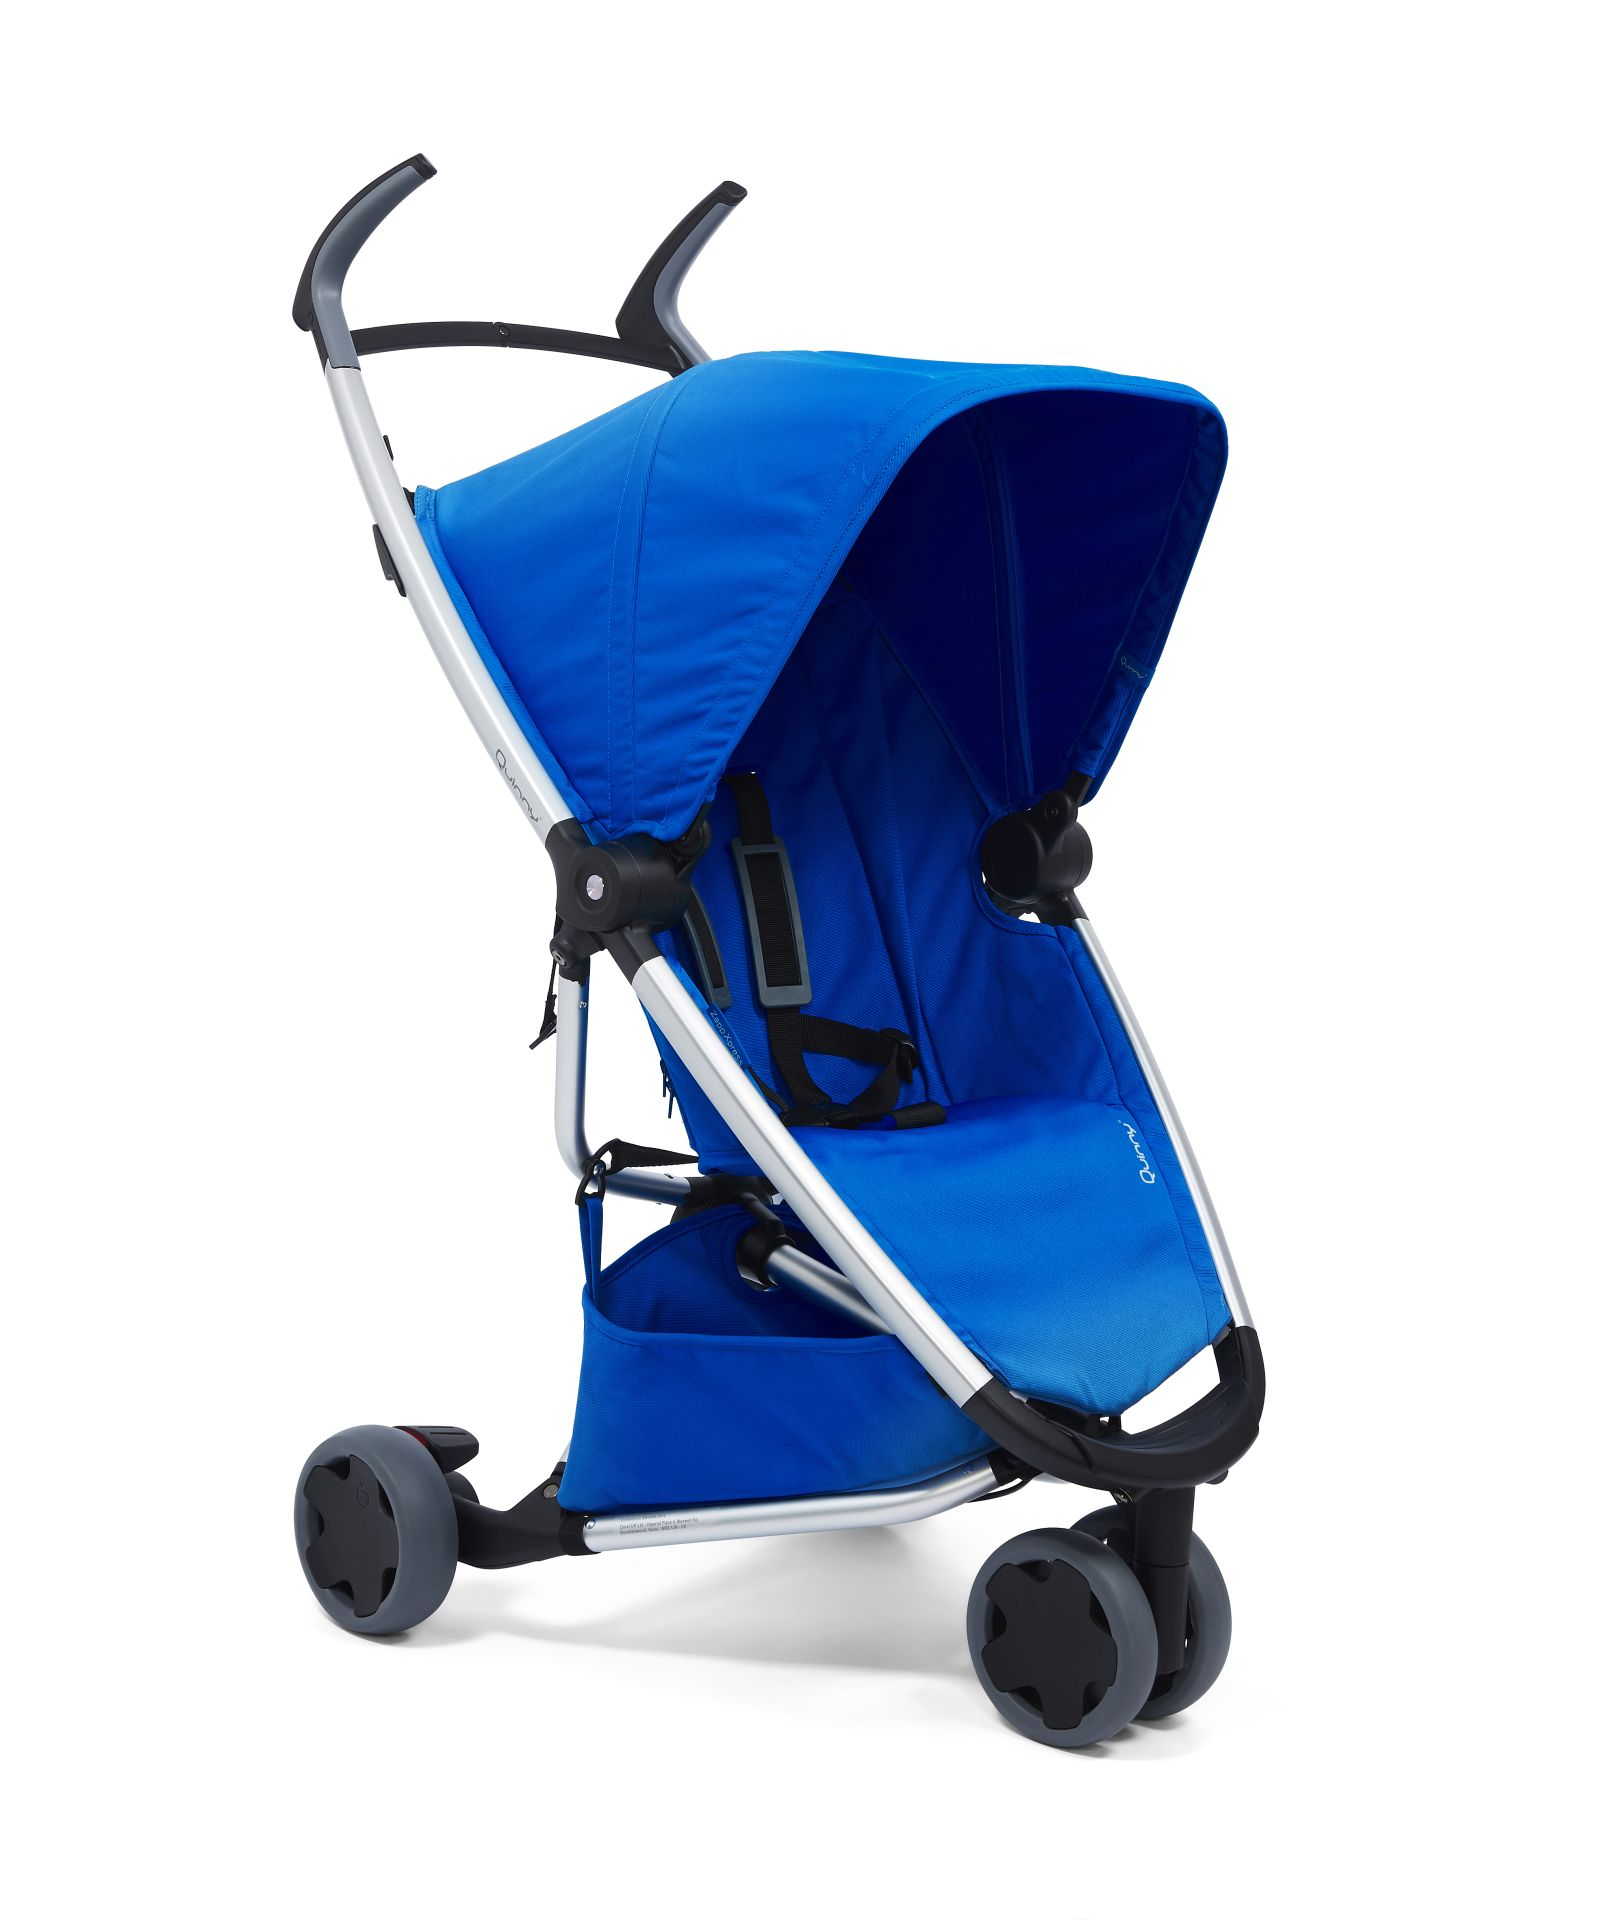 quinny buggy zapp xpress 2019 all blue buy at kidsroom strollers. Black Bedroom Furniture Sets. Home Design Ideas